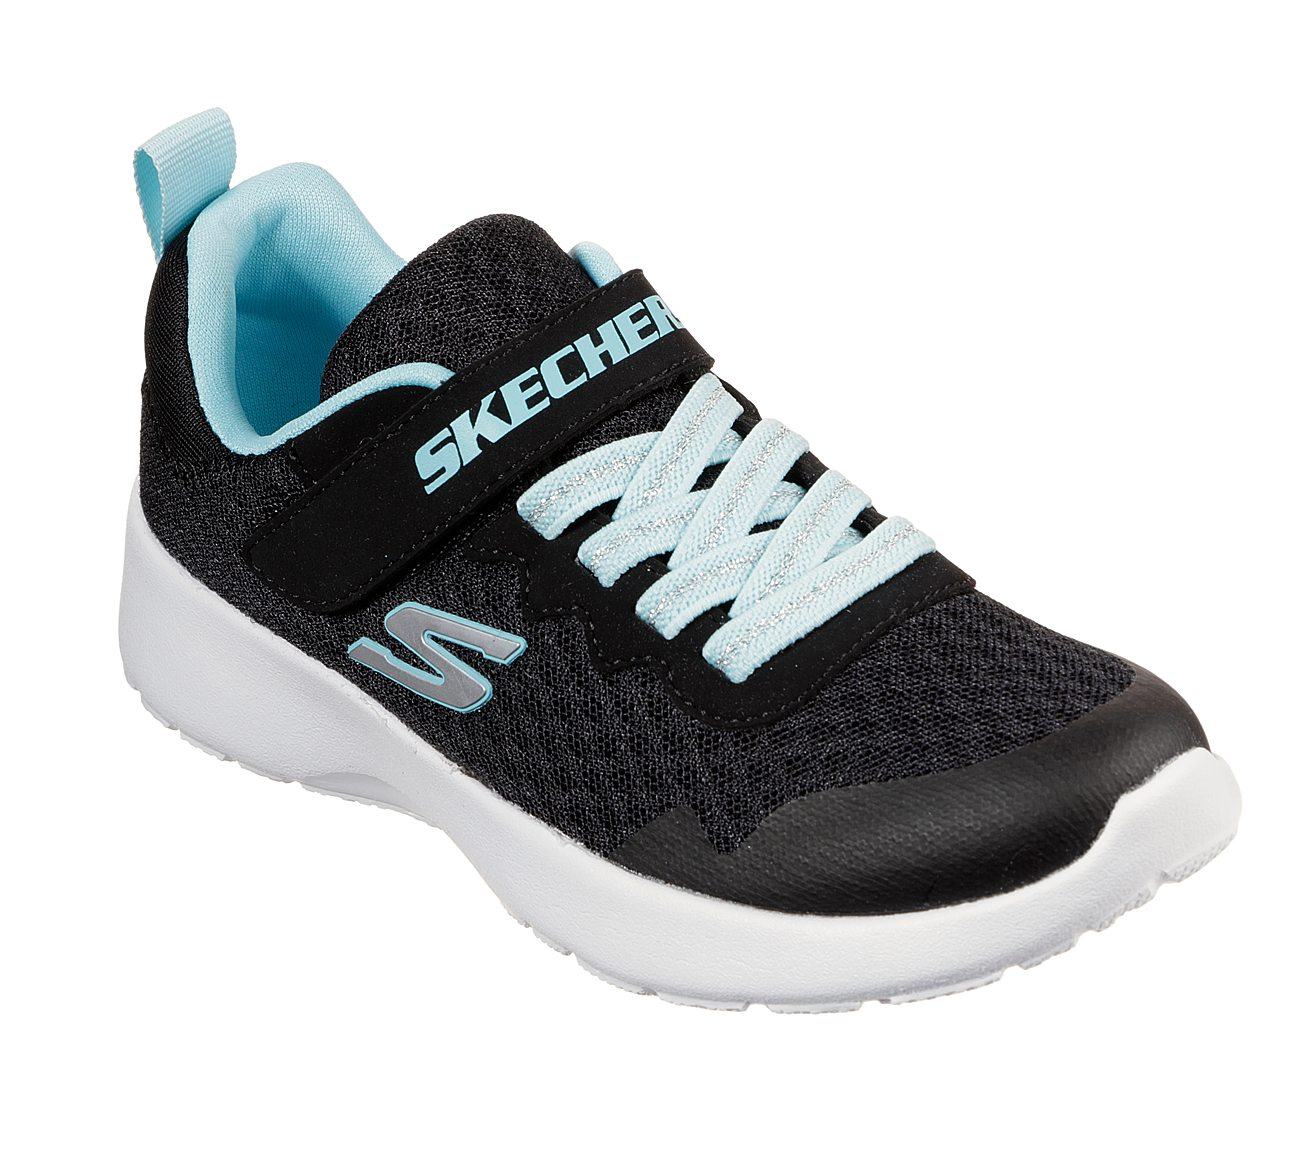 skechers round bottom